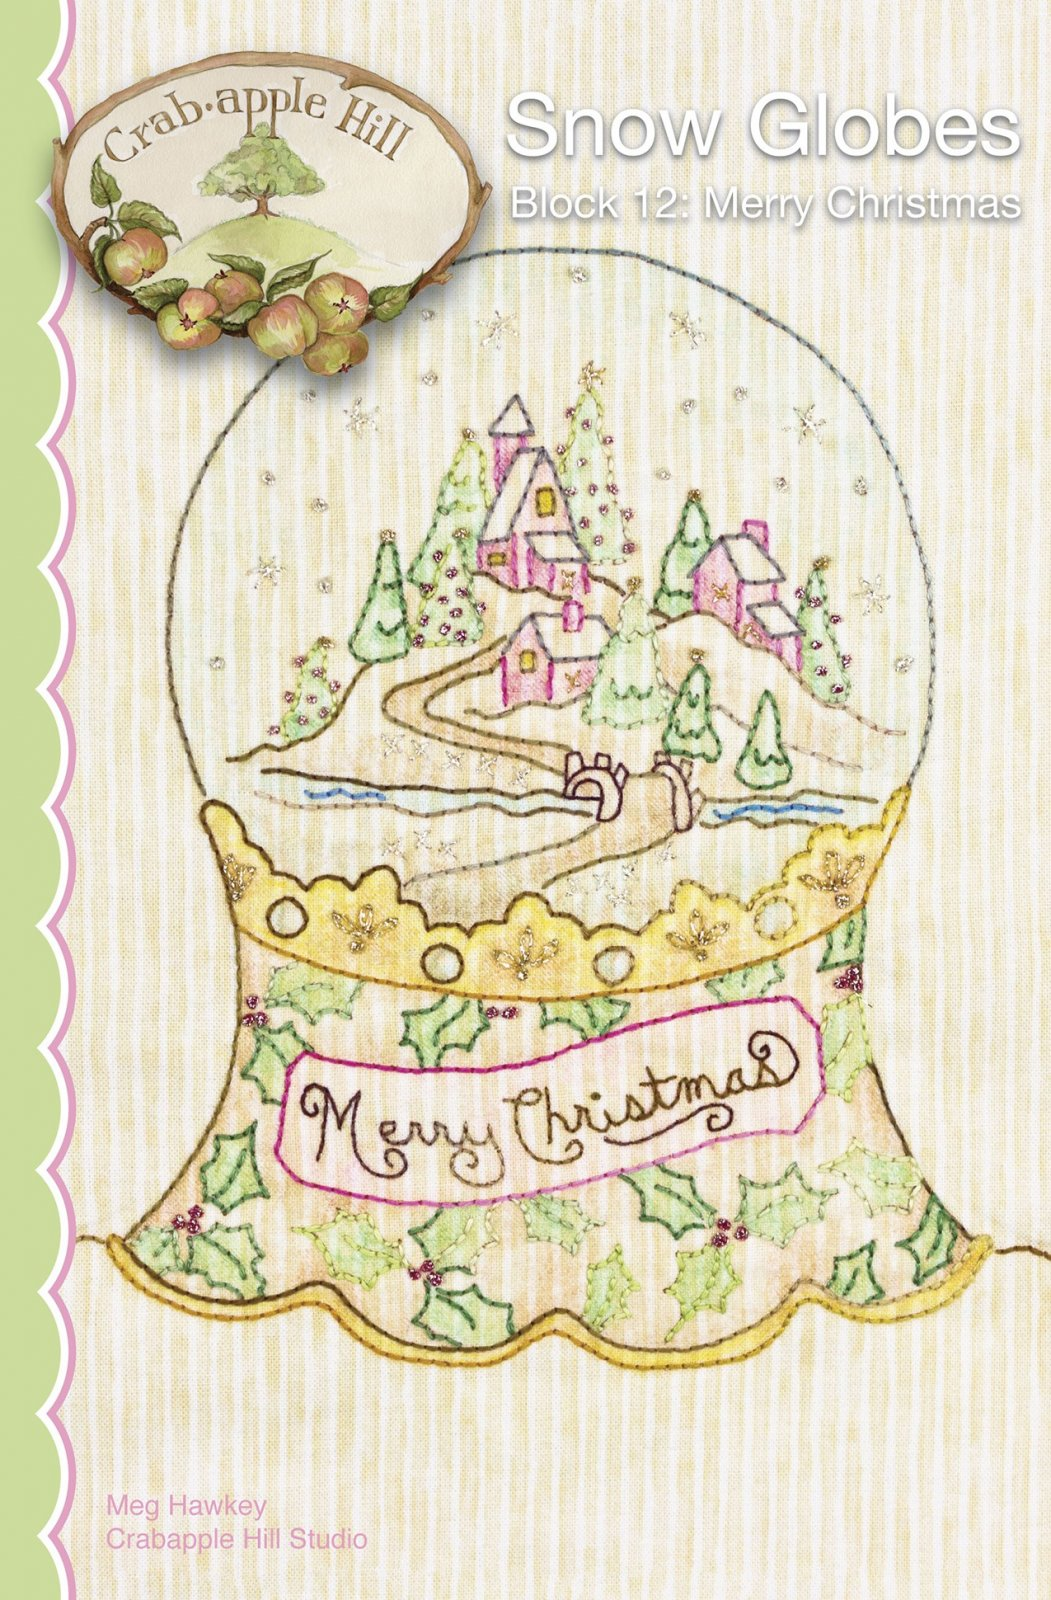 Snow Globes - 12 - Merry Christmas